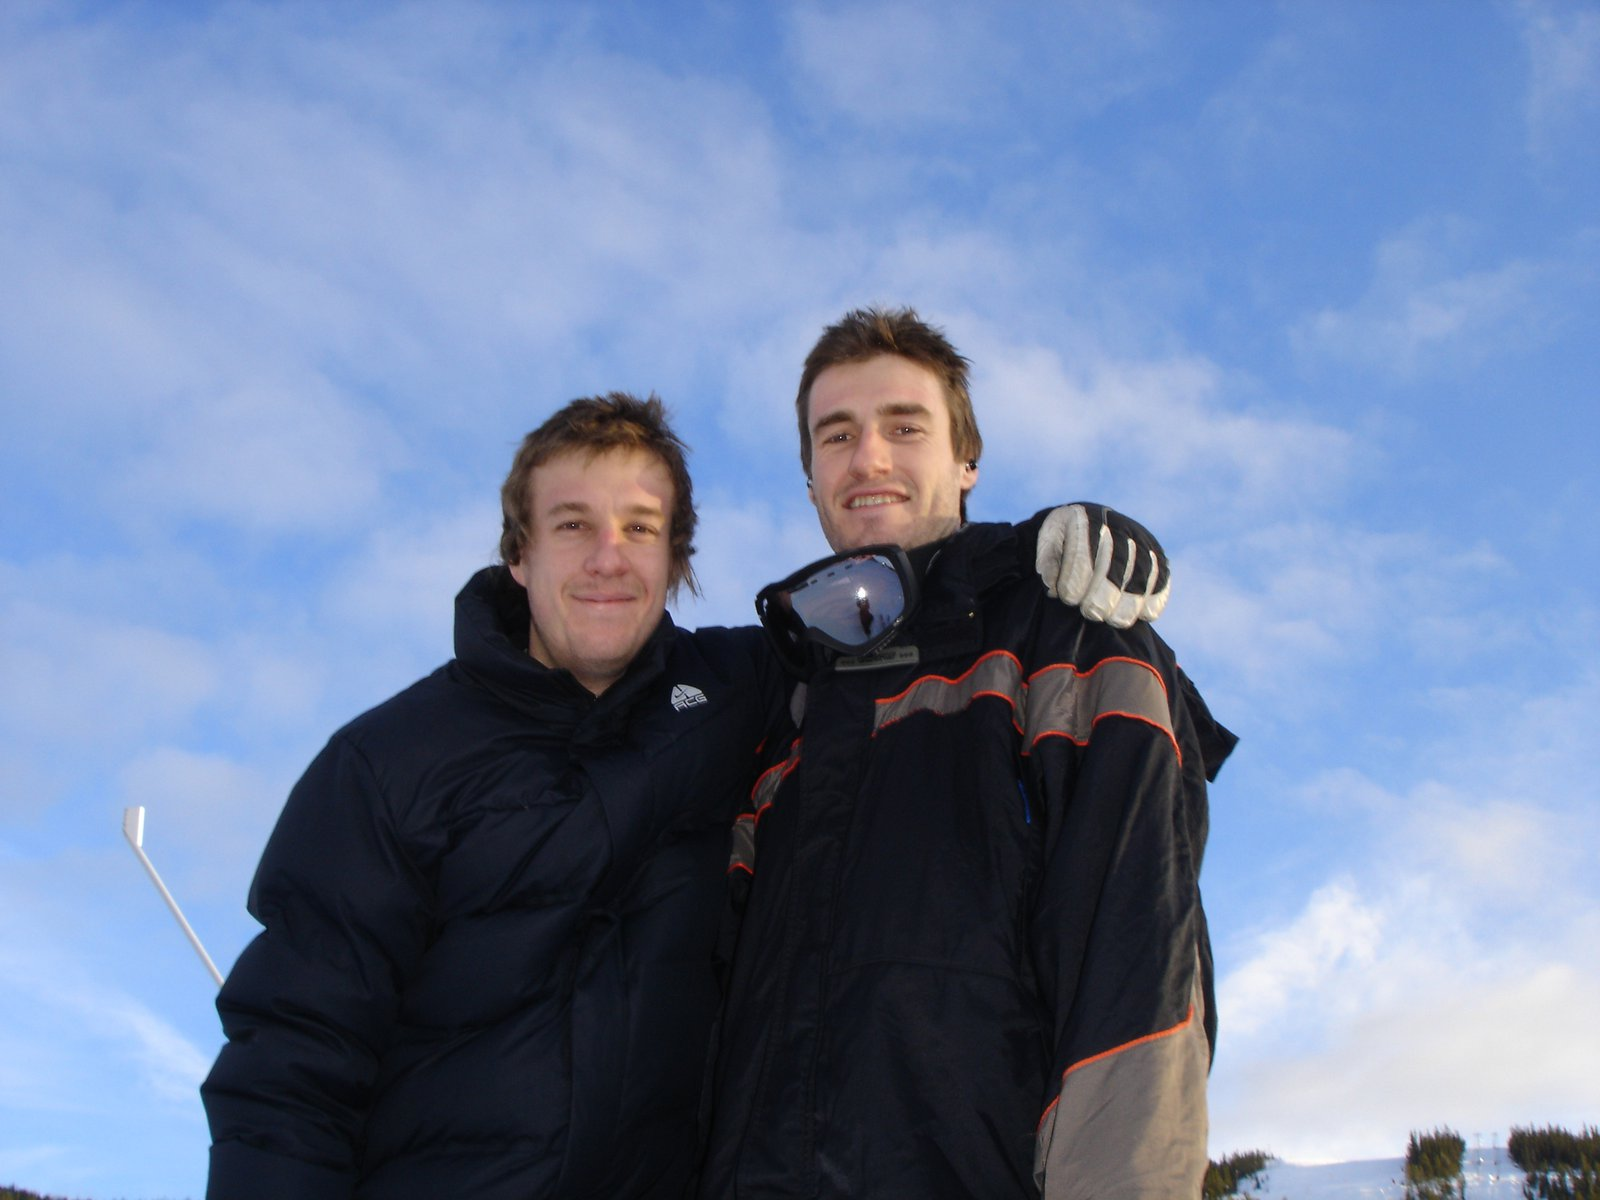 Cameron (my brother) and I in Nesbyen, Norway.